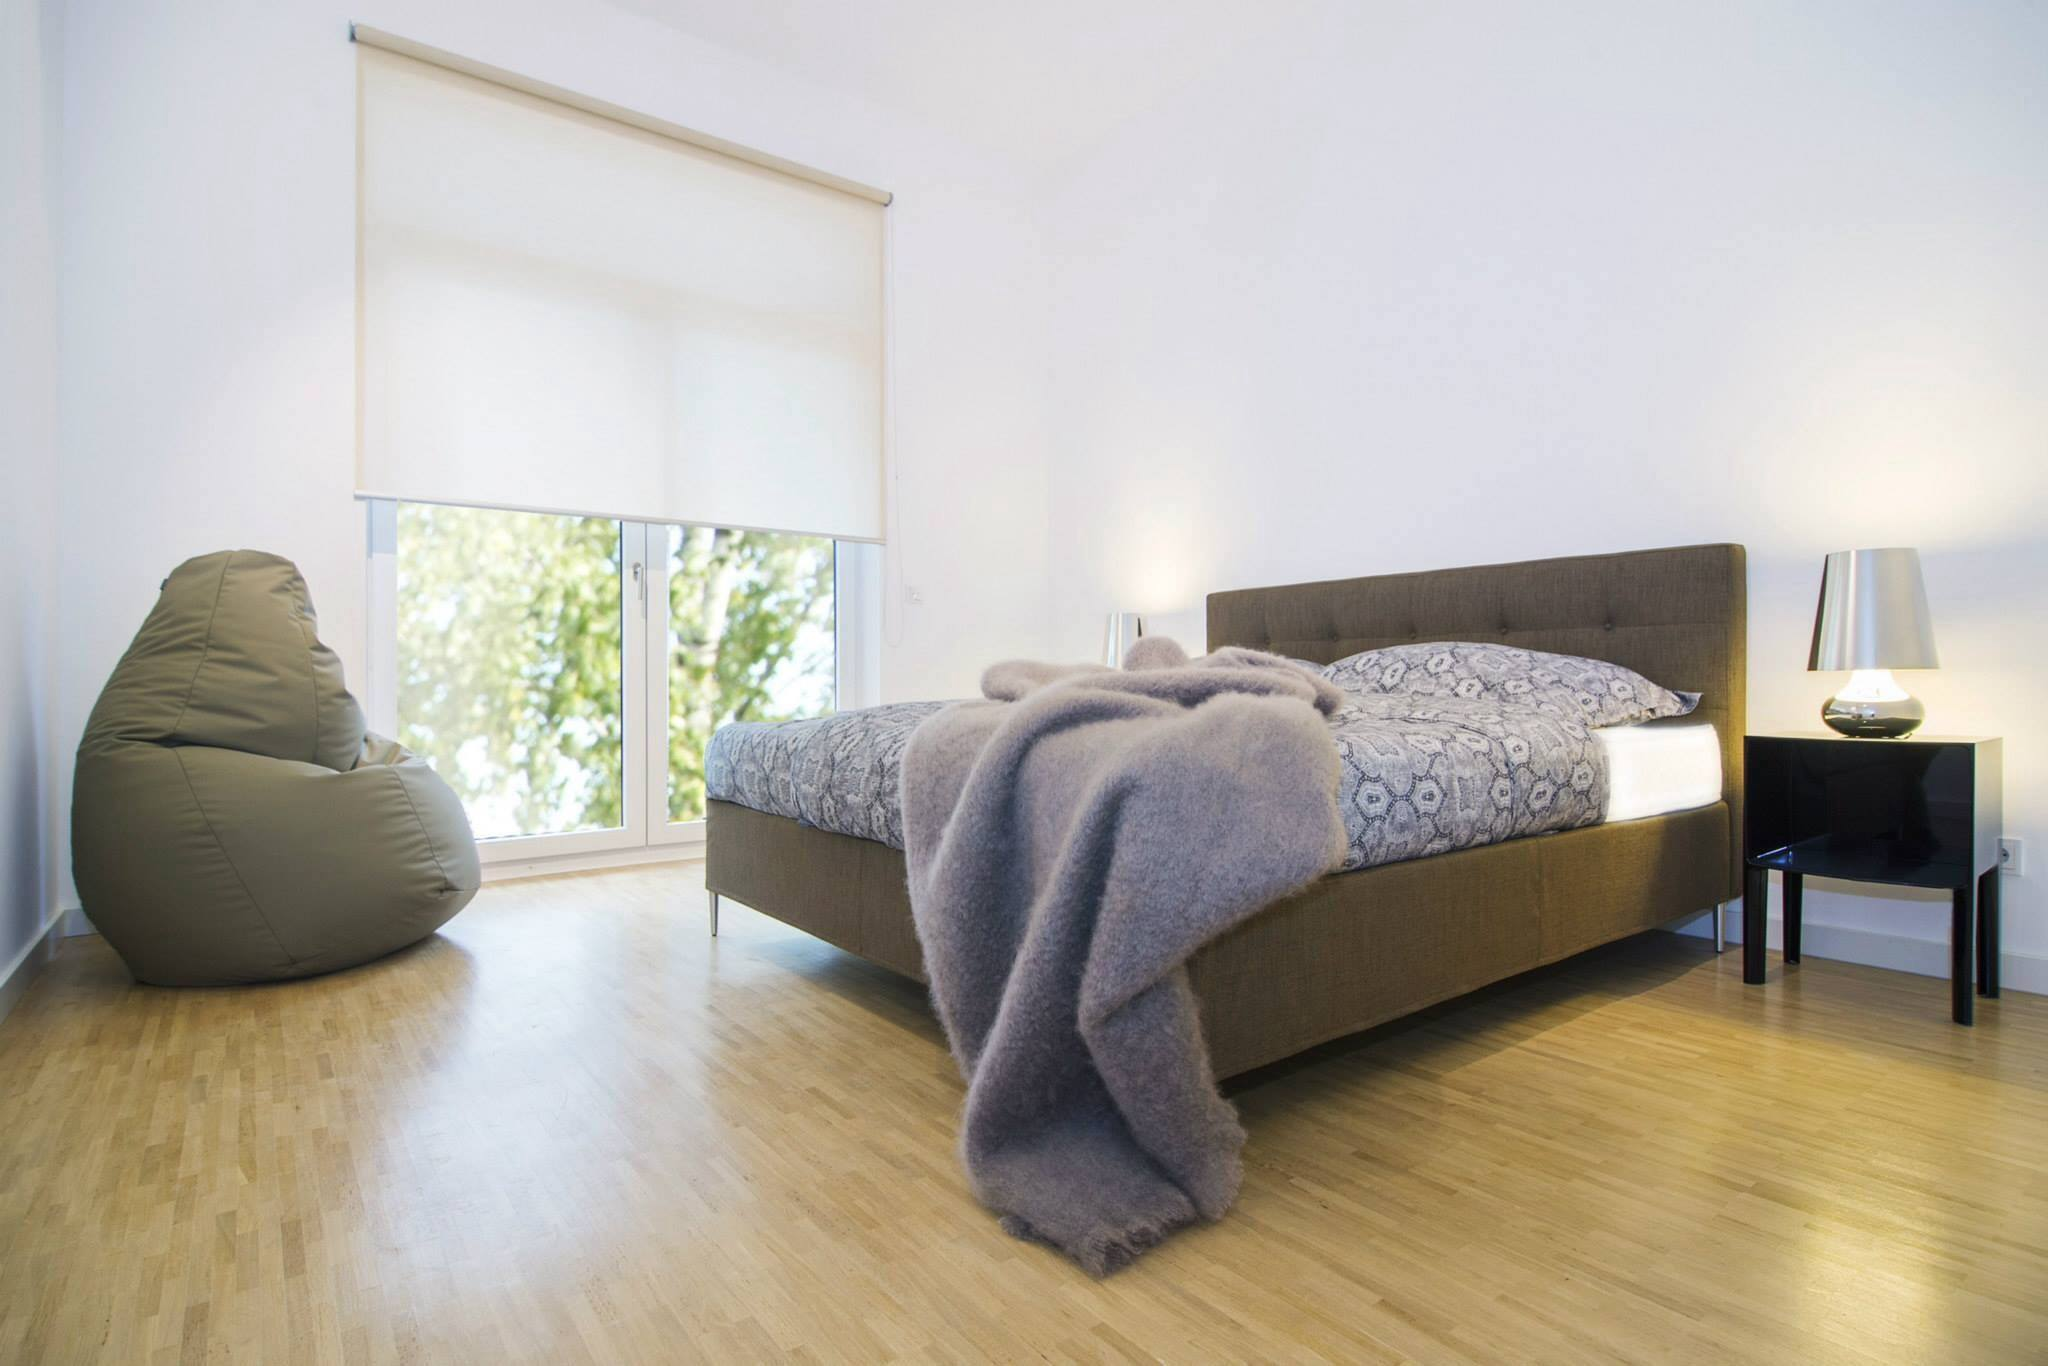 Boxspring – Woher kommt der Trend Boxspring?